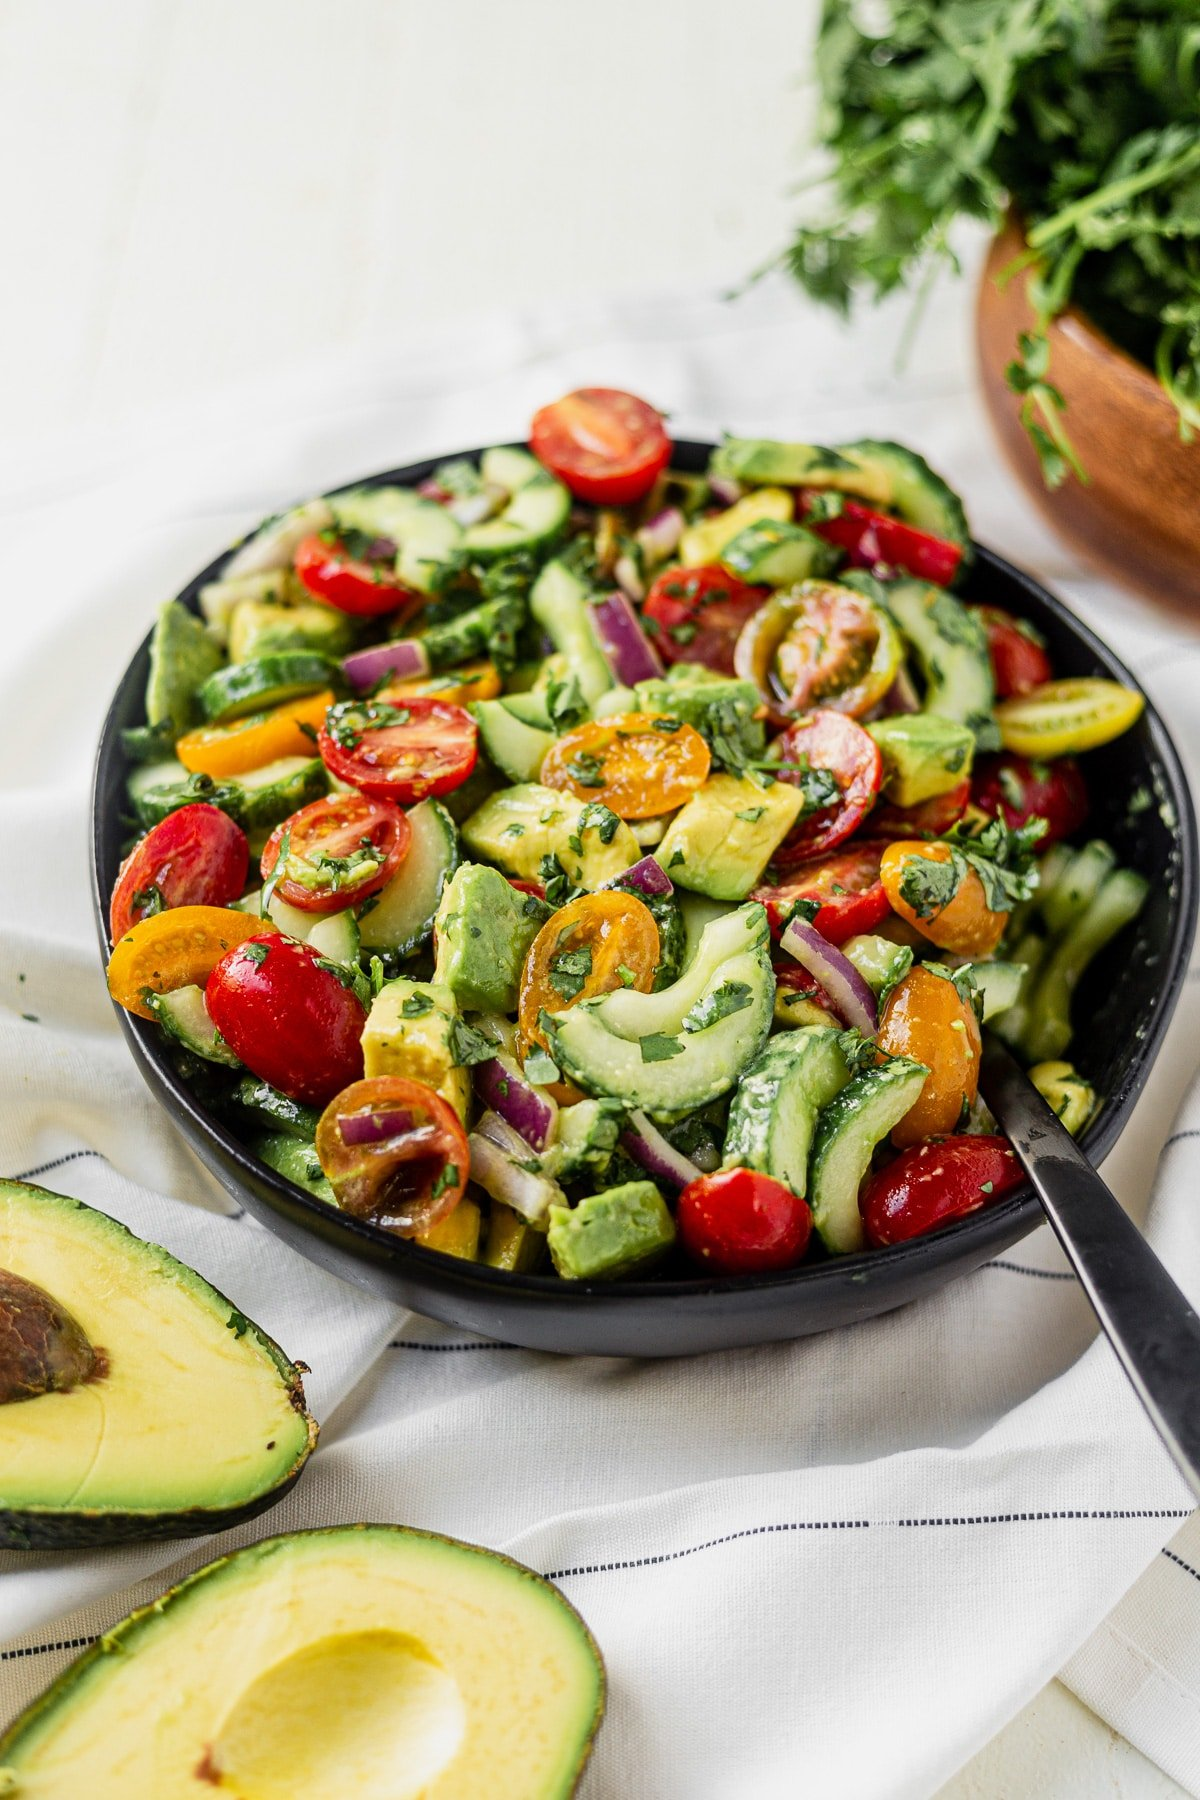 cucumber tomato onion avocado salad in a black serving bowl with a black serving spoon